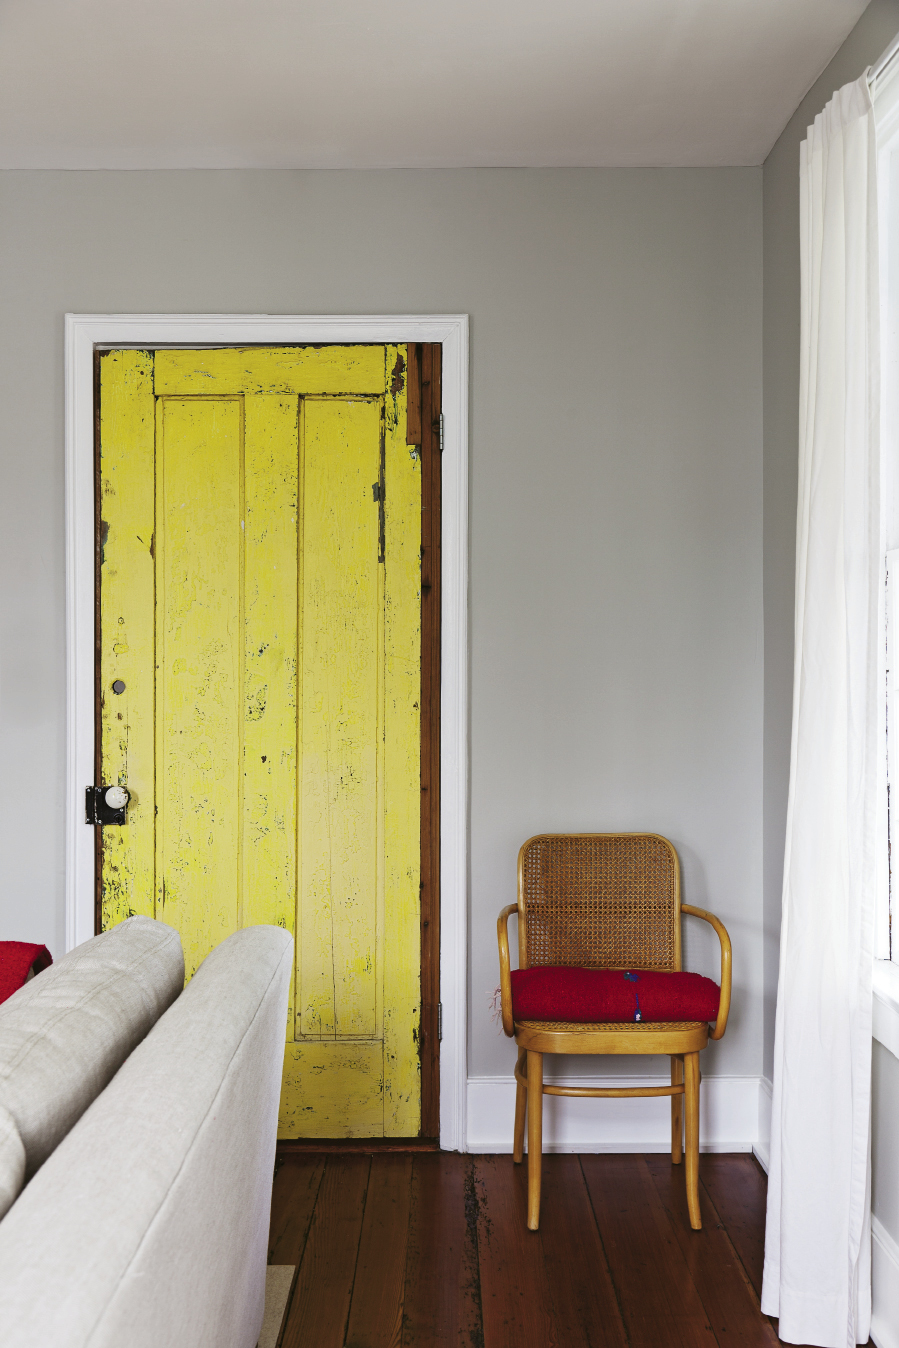 When the couple bought the building, this heart-pine door, originally the home's back entry, was painted bright yellow. It's been cleaned up and brought inside, but vestiges of the sunny paint color remain.